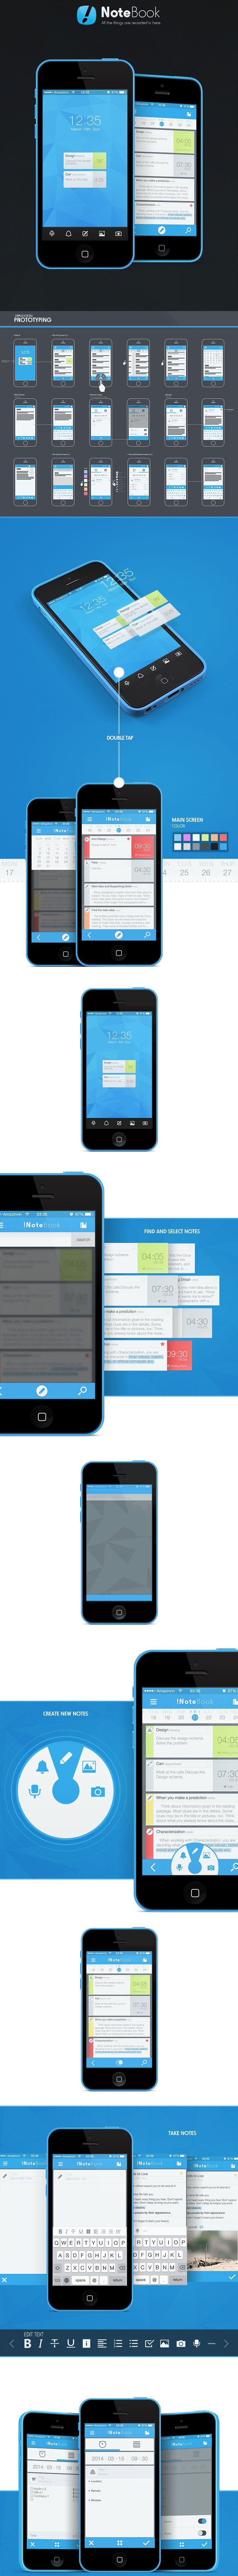 !NoteBook app#ui #ux #mobile #design #app